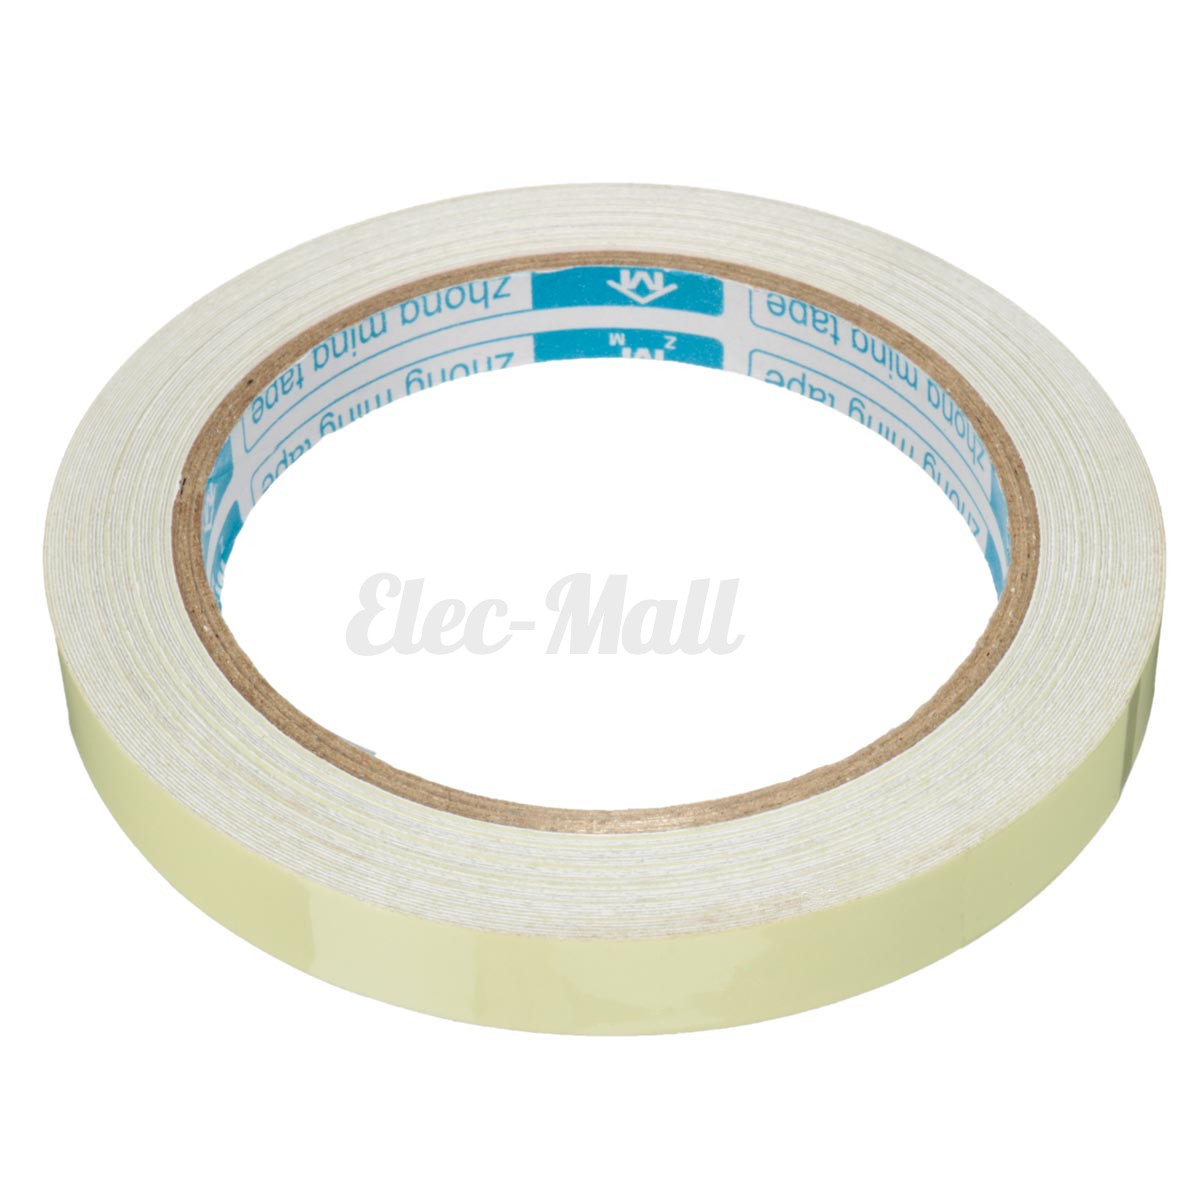 4 Sizes Self-adhesive Luminous Tape Glow in The Dark Safety Stage Home Decor